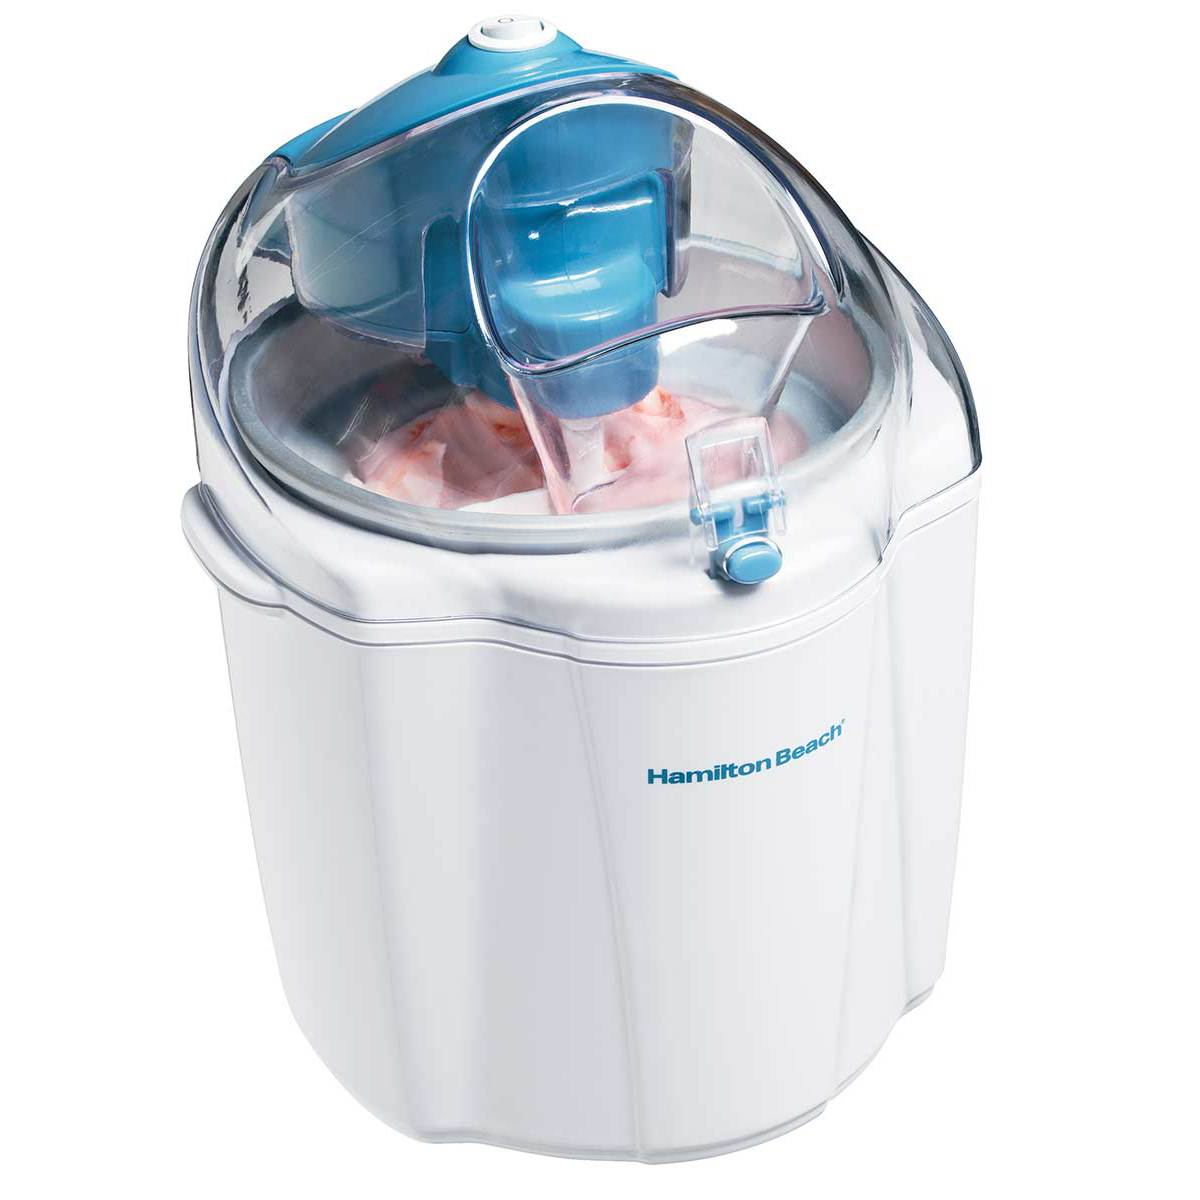 1.5 Quart Capacity Ice Cream Maker (68320)